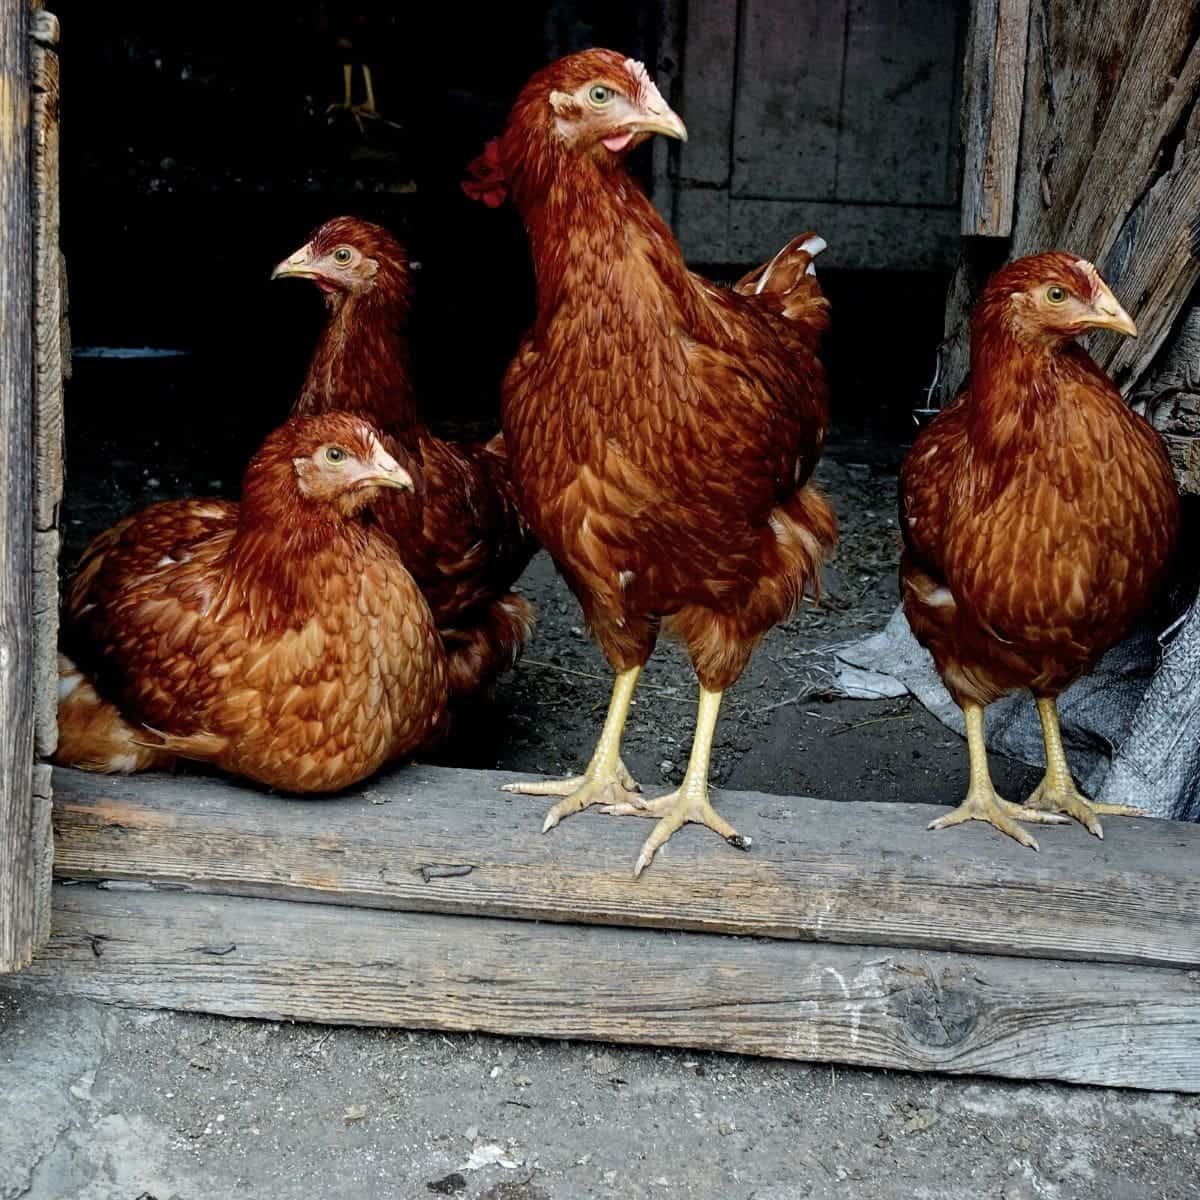 chickens along with homestead animals